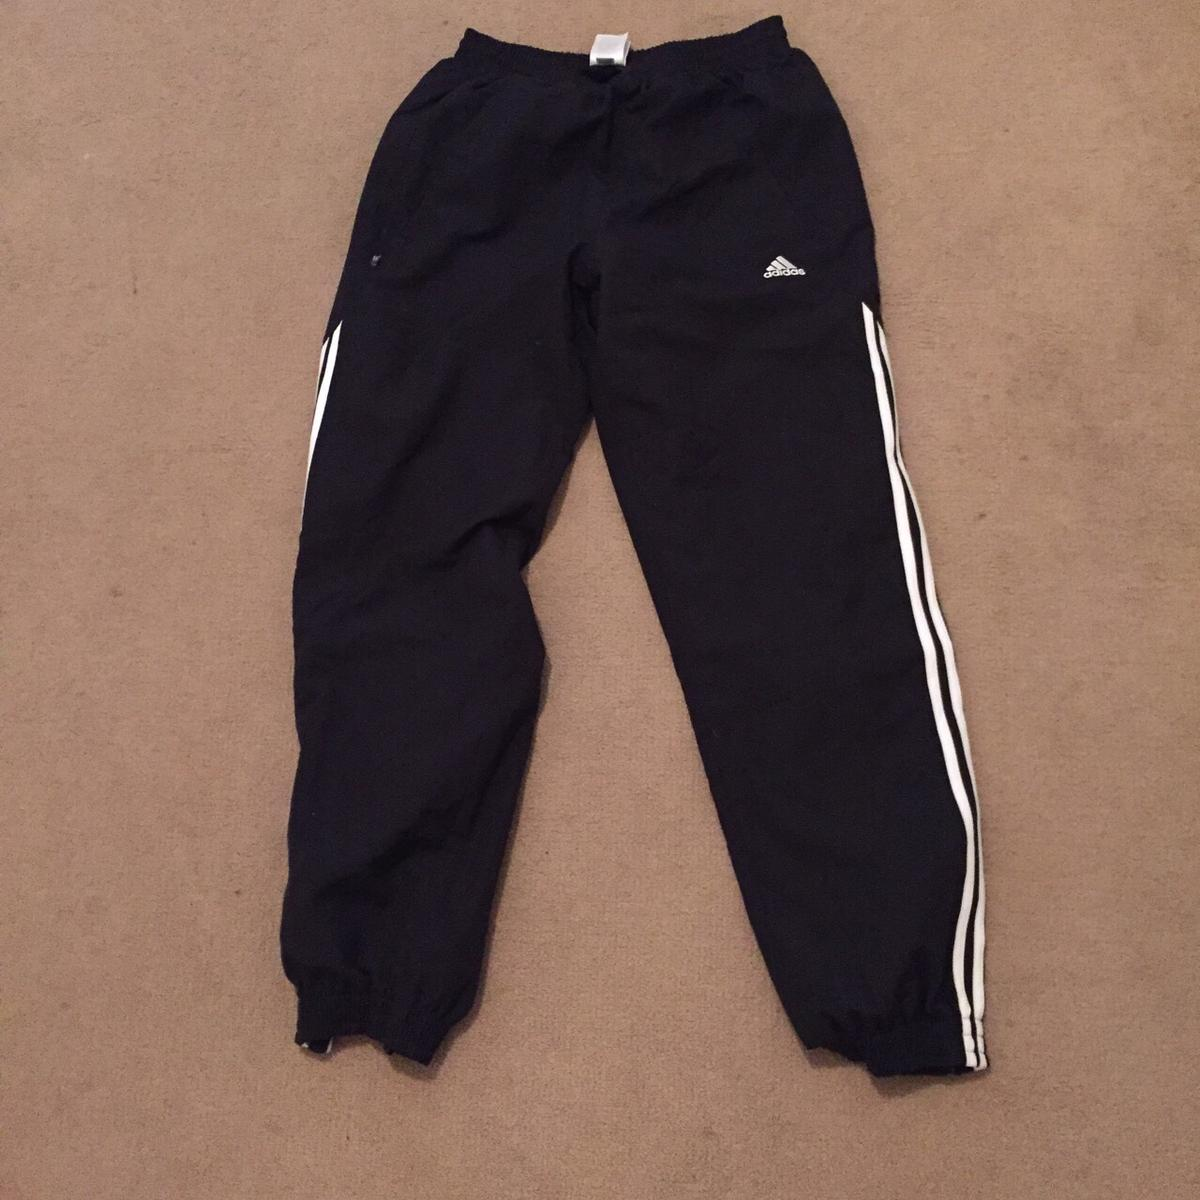 Armonioso bandera chisme  Black adidas stinger pants in SK3 Stockport for £20.00 for sale | Shpock